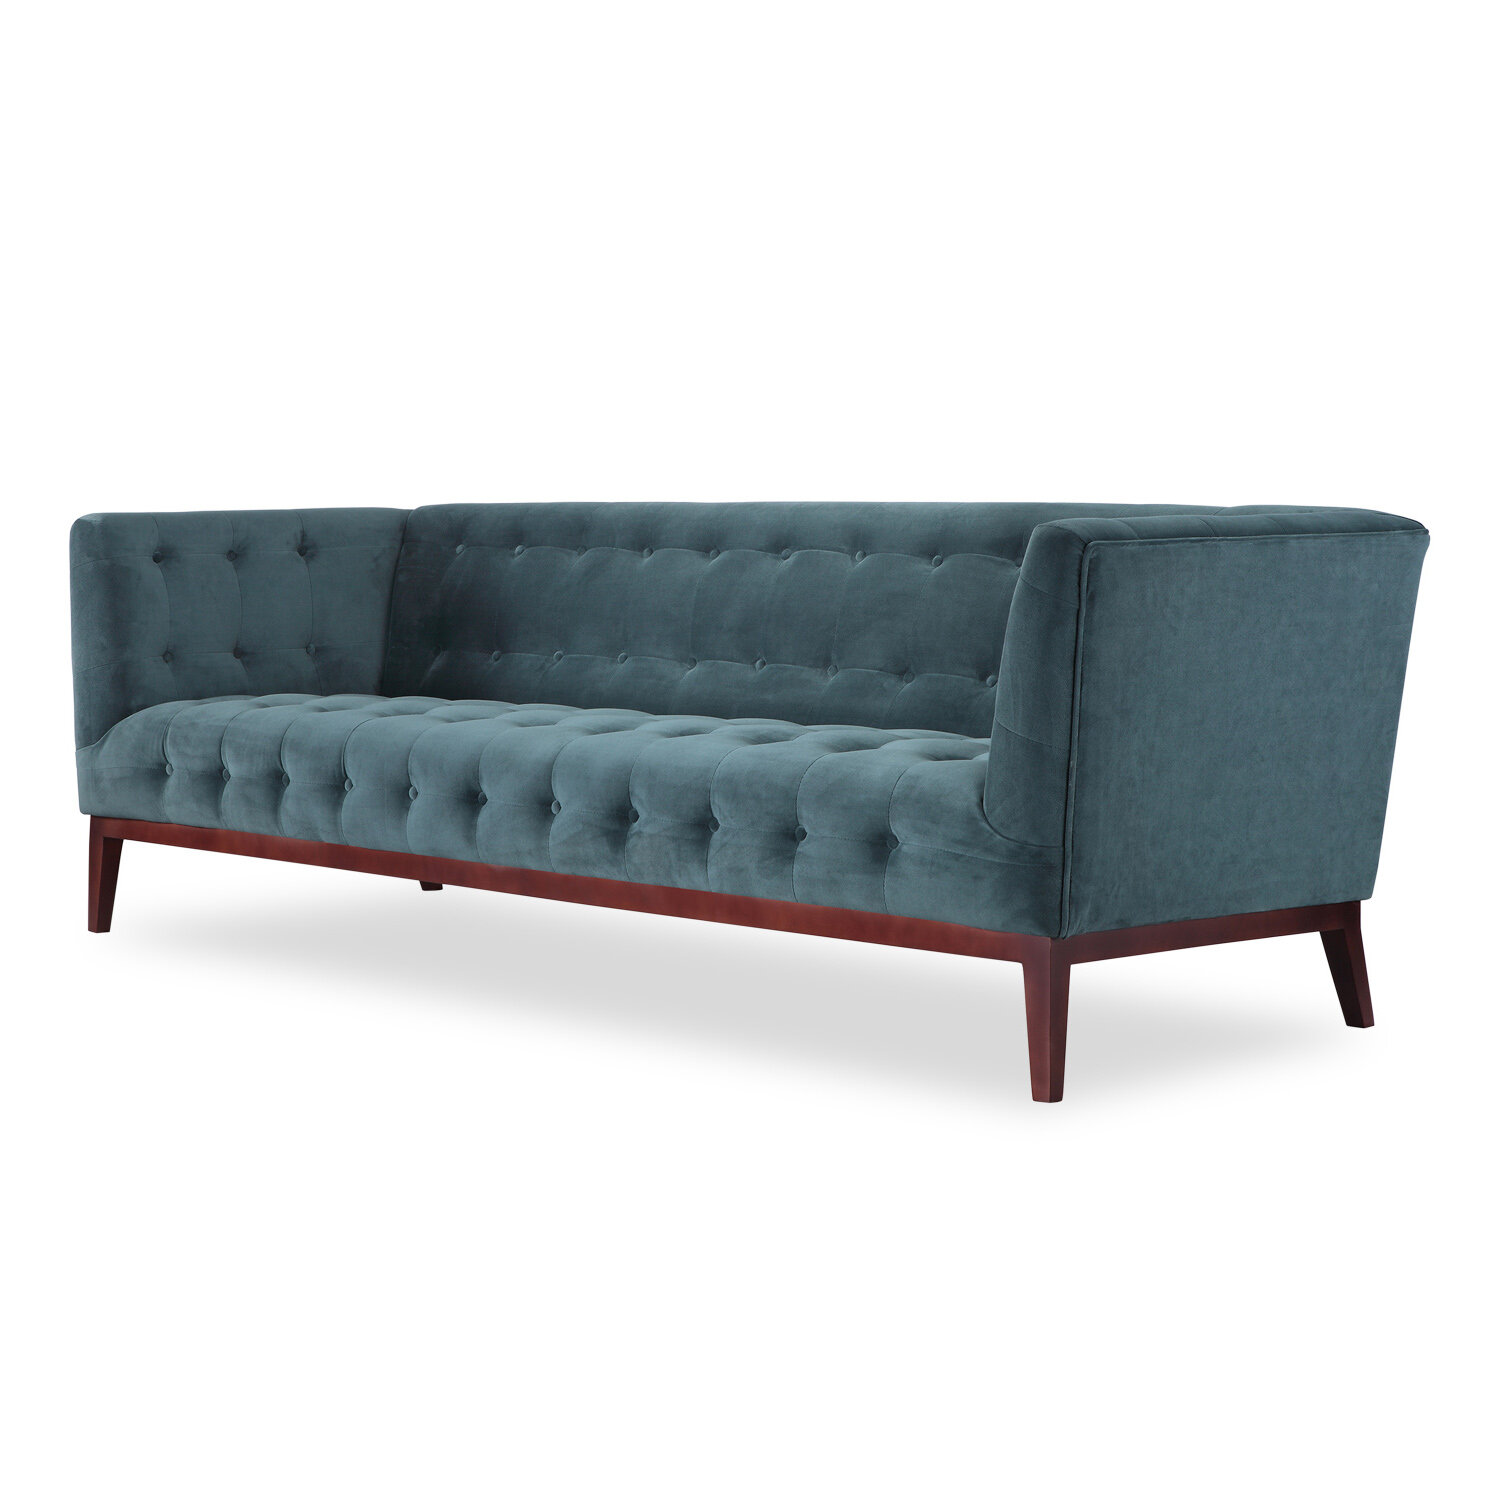 Astonishing Margaret Mid Century Modern English Tufted Chesterfield Sofa Pabps2019 Chair Design Images Pabps2019Com